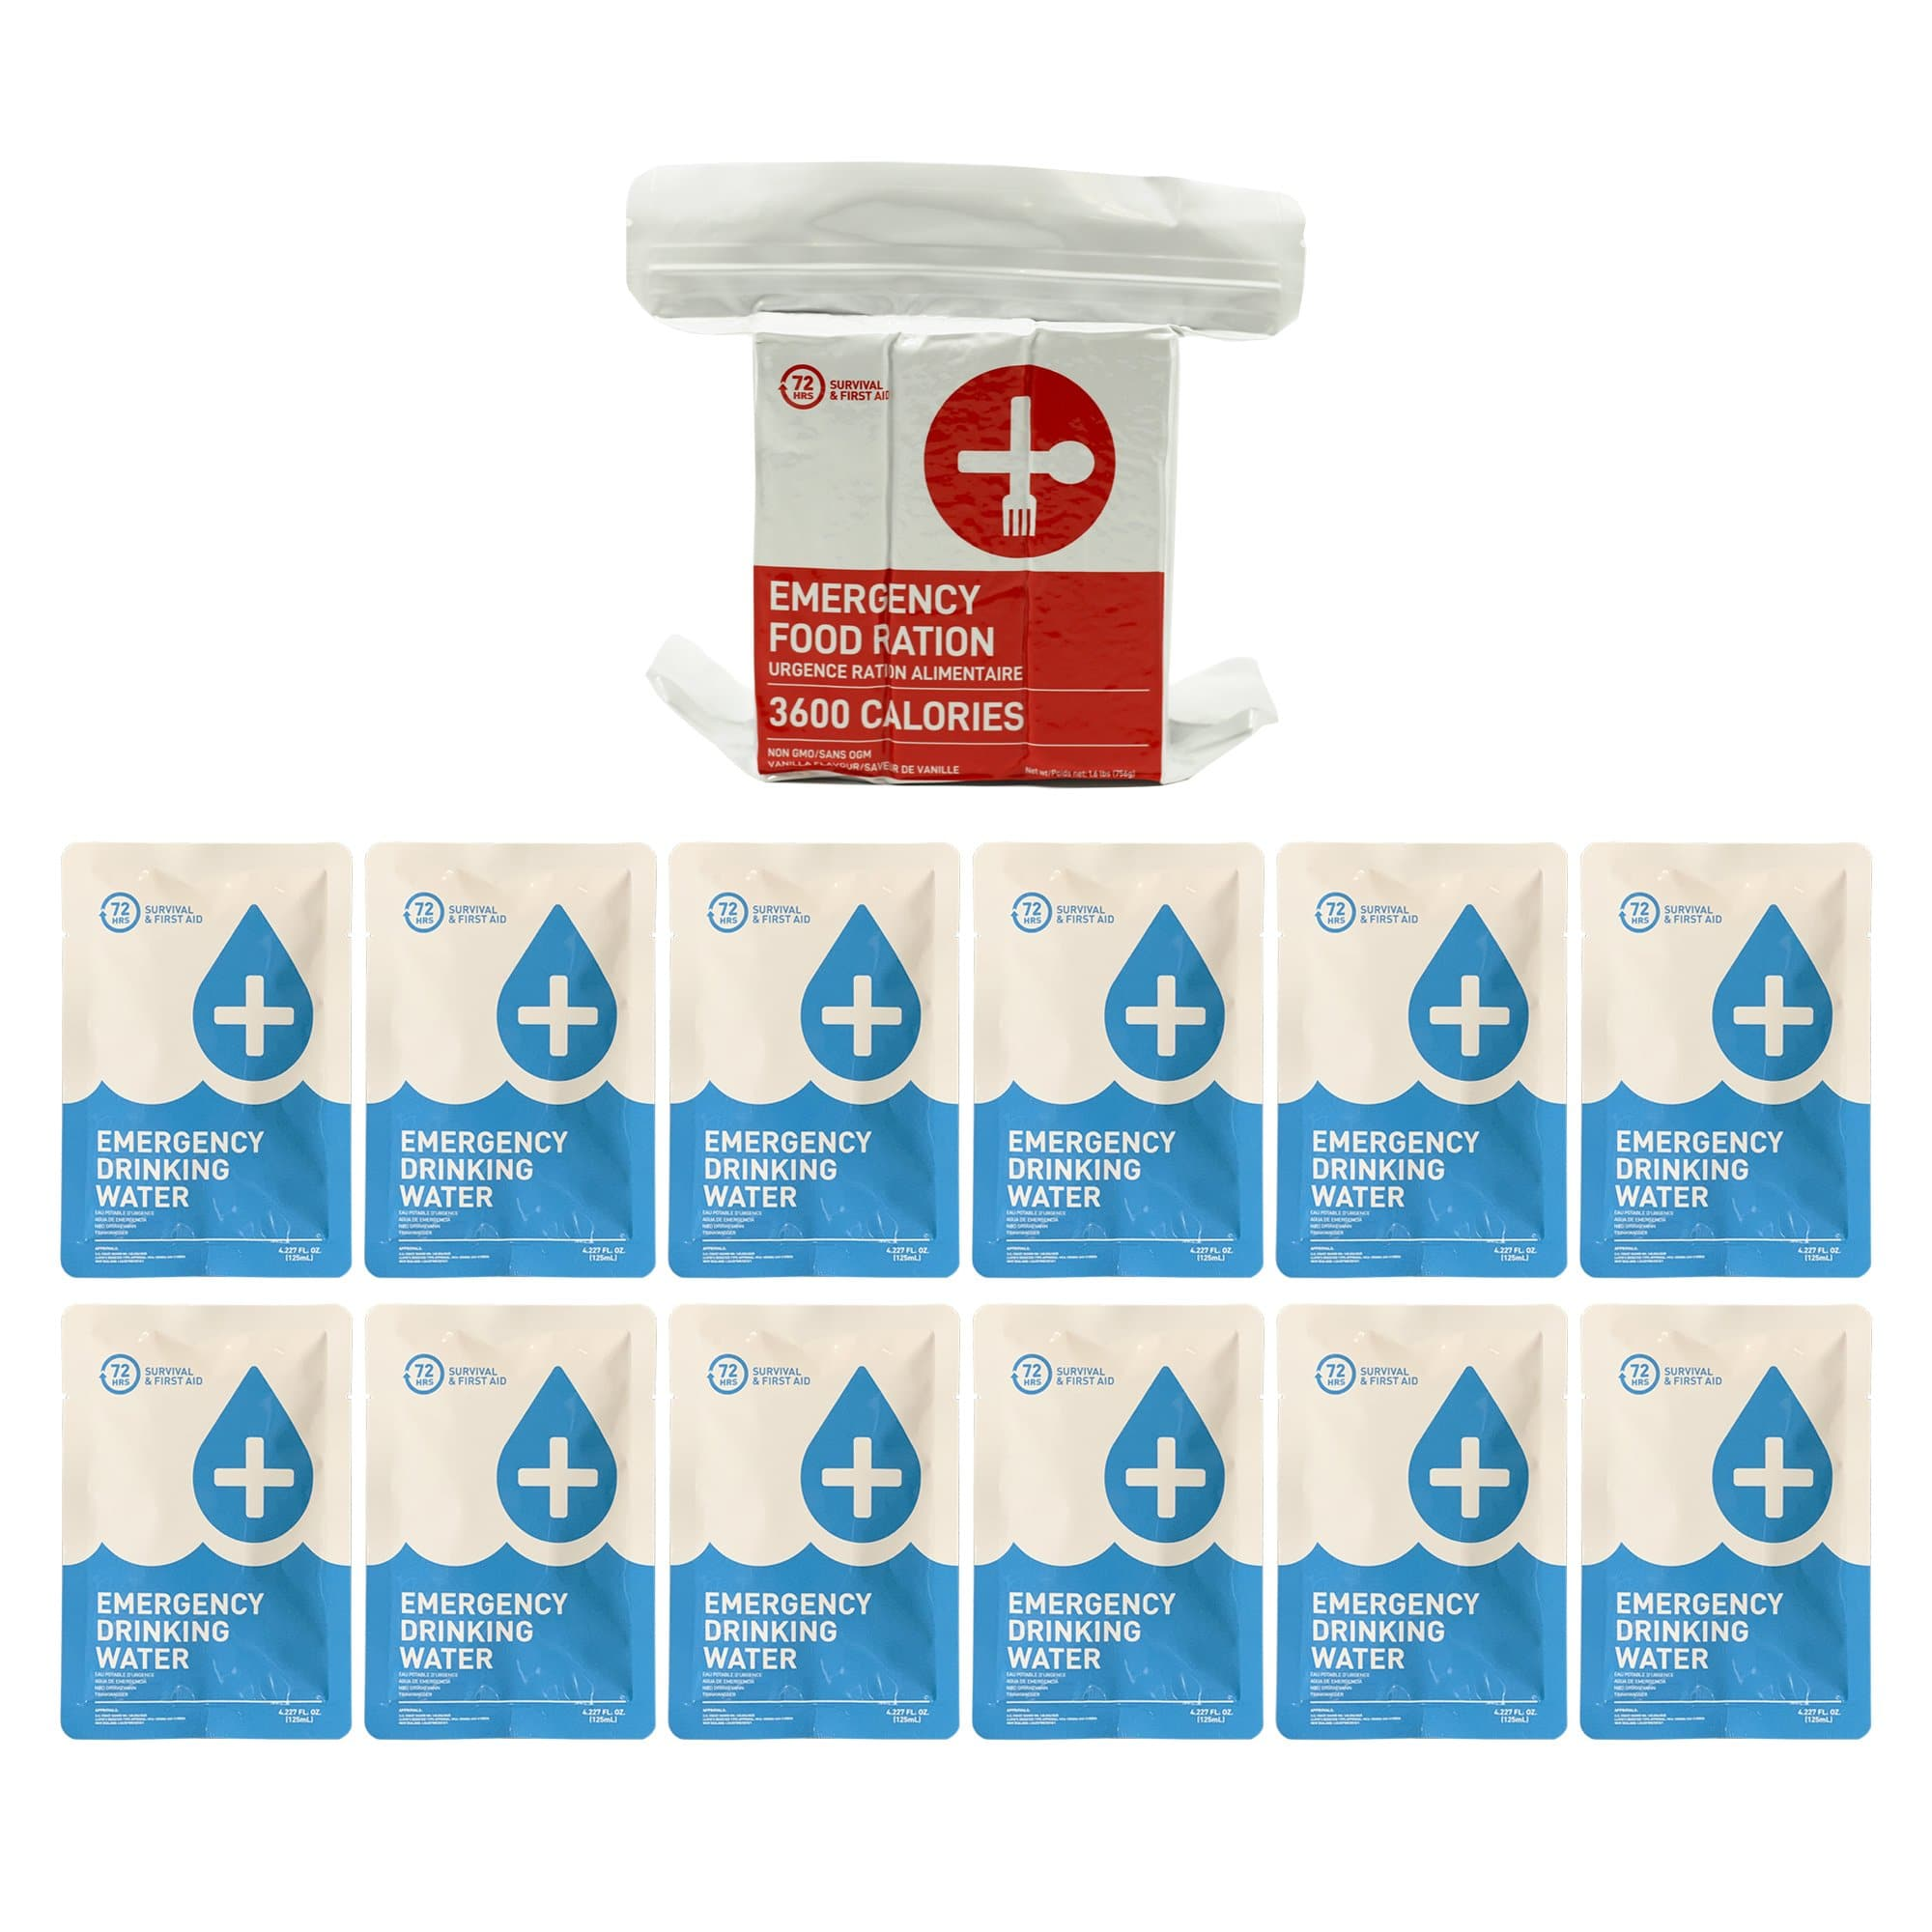 1 person emergency food and water replacement kit